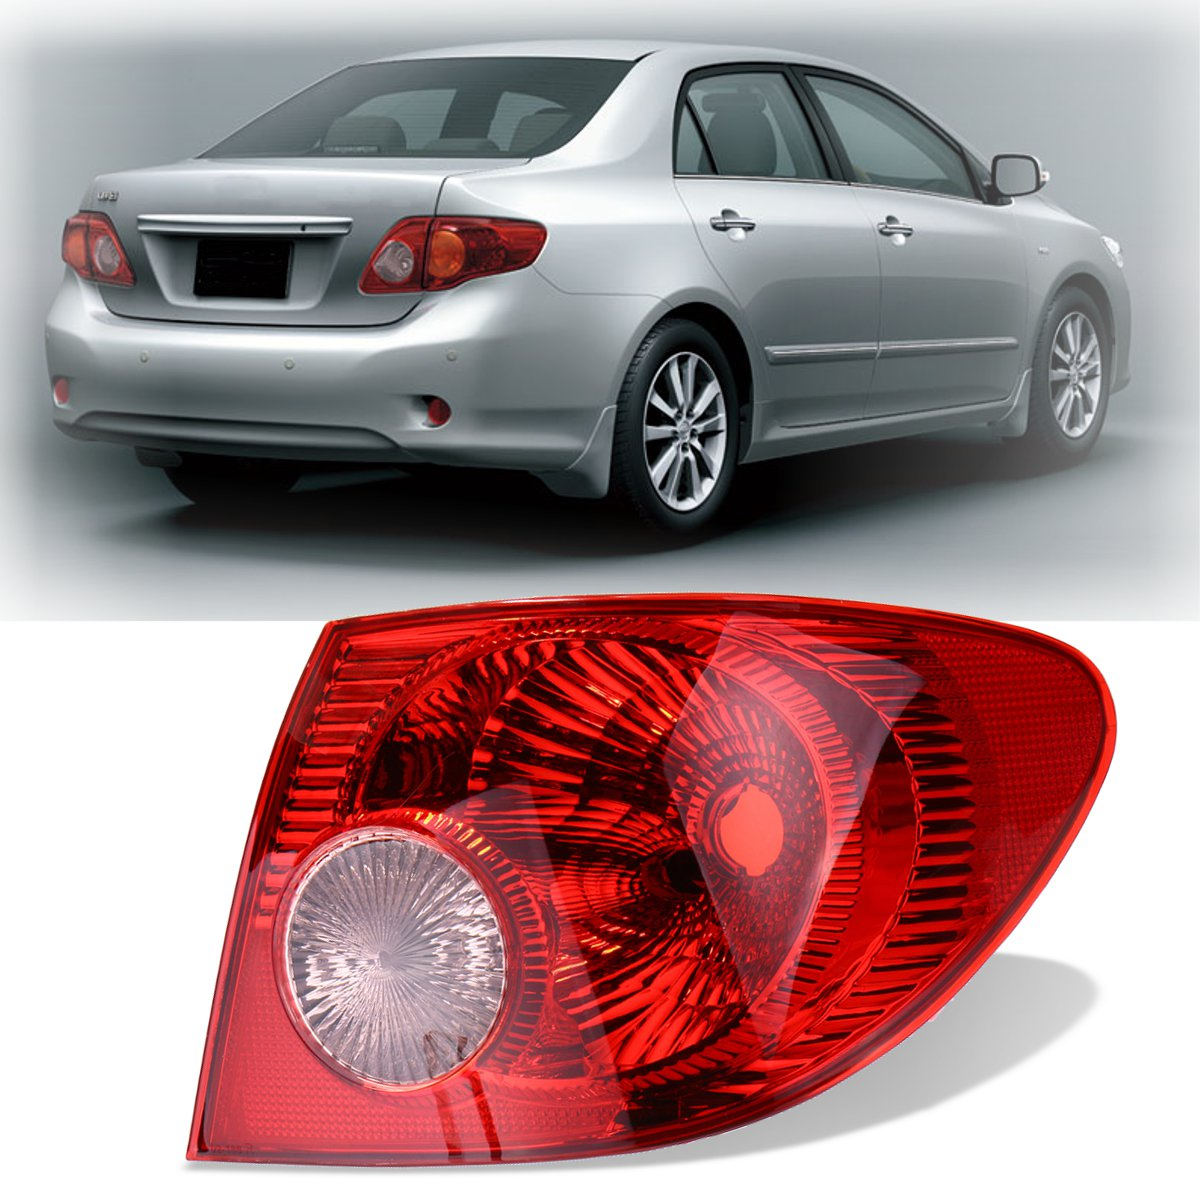 Tail Light Brake Lamps Outer Right Side Left Side For Toyota Corolla  2005 2006 2007 2008 free shipping for skoda octavia sedan a5 2005 2006 2007 2008 right side rear lamp tail light